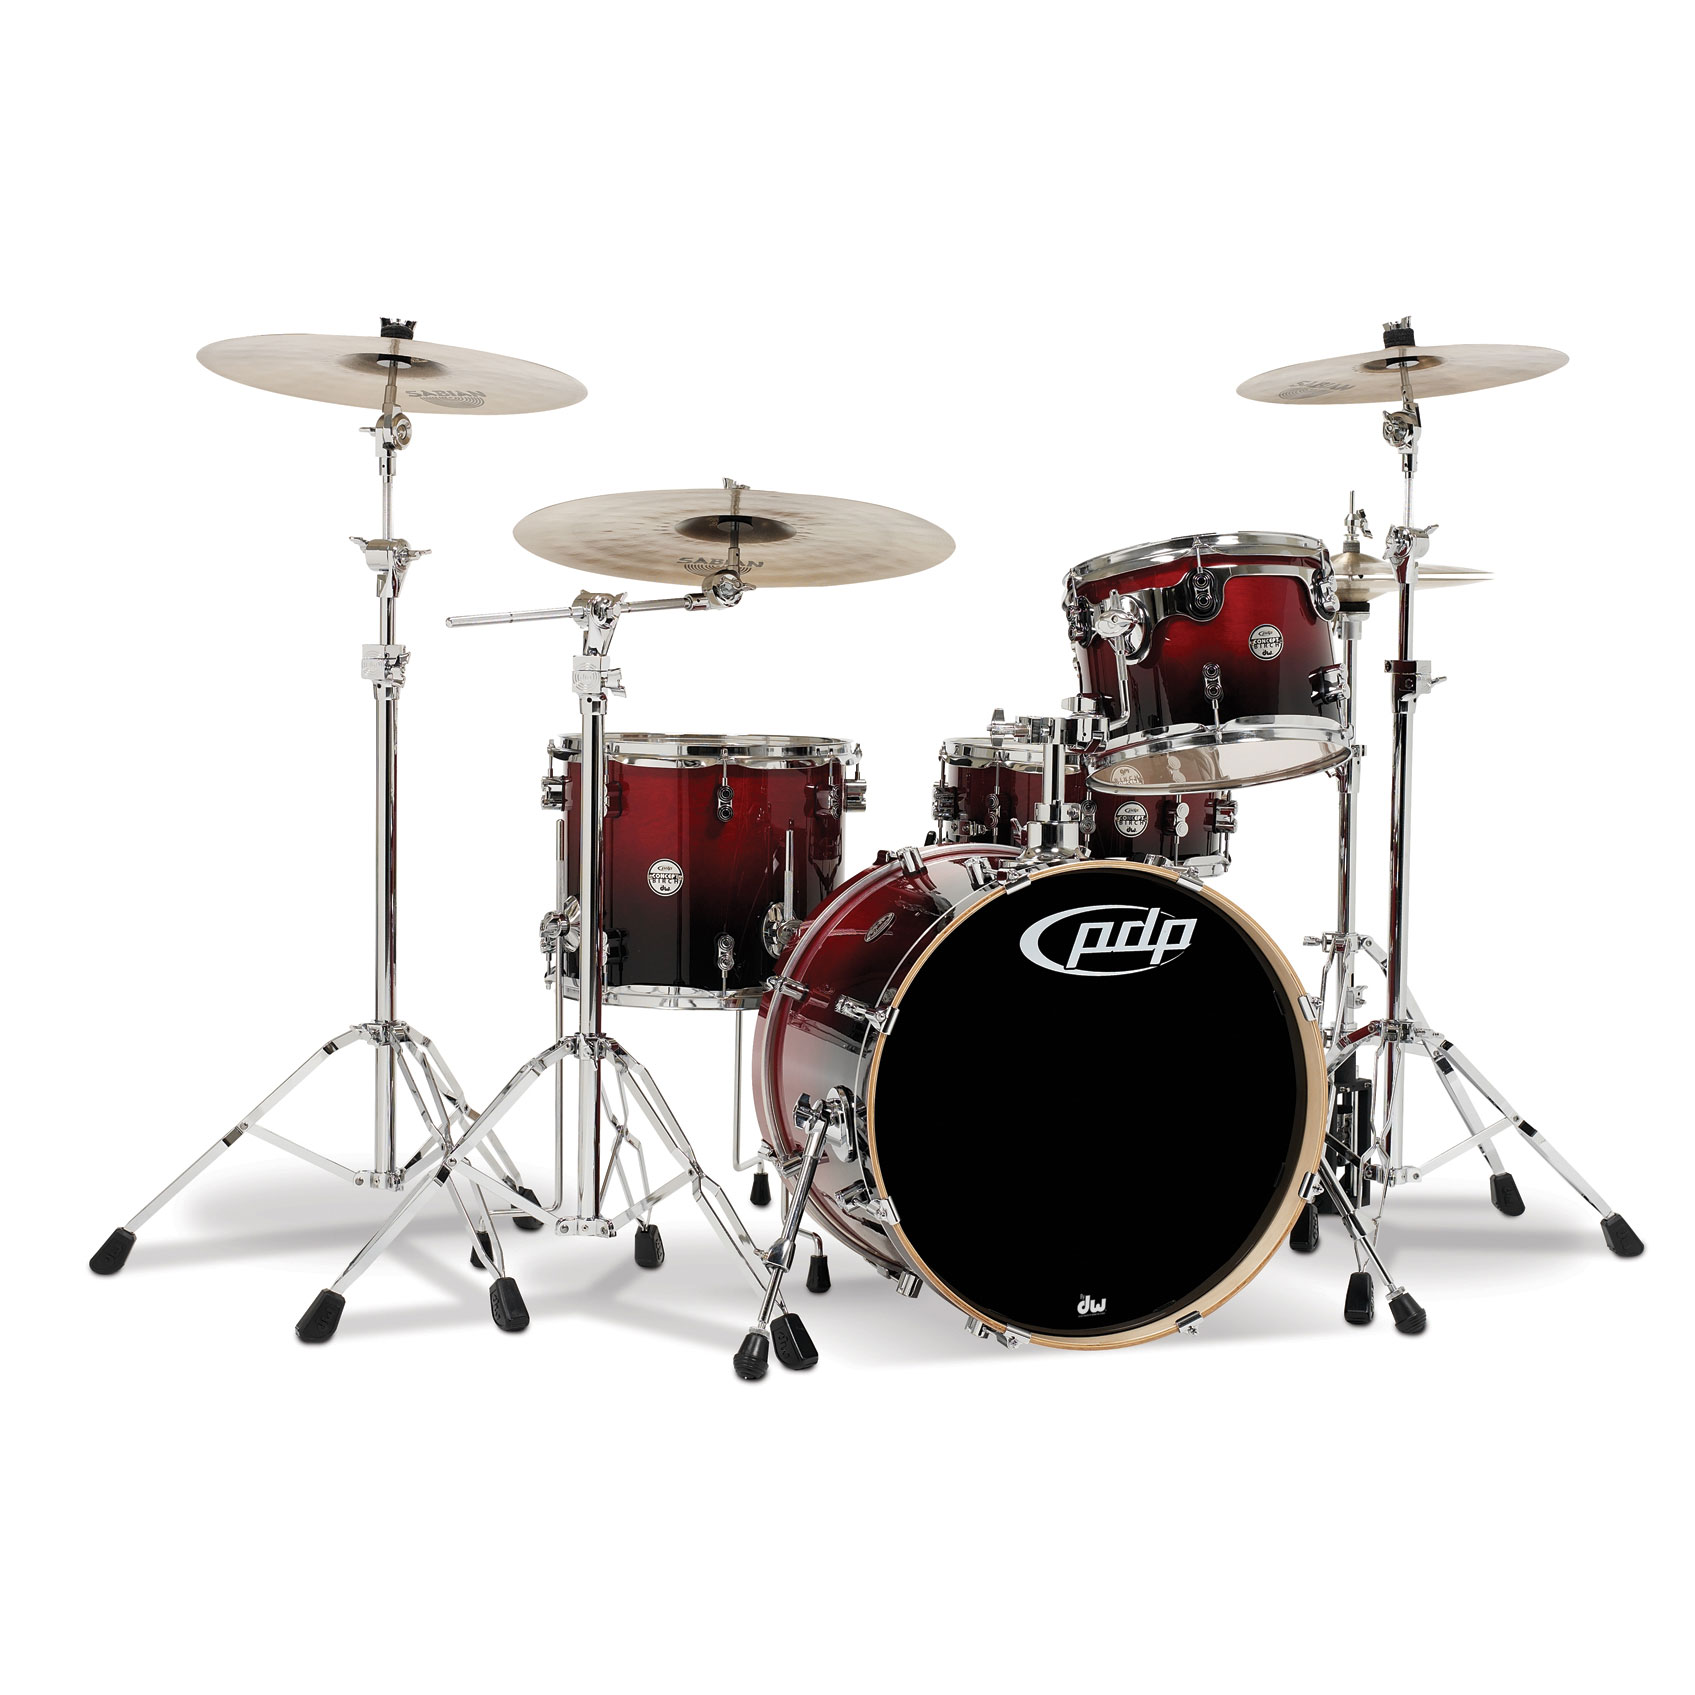 "PDP CB4 Concept Birch 4-Piece Drum Set Shell Pack (20"" Bass, 12/14"" Toms, 14"" Snare)"